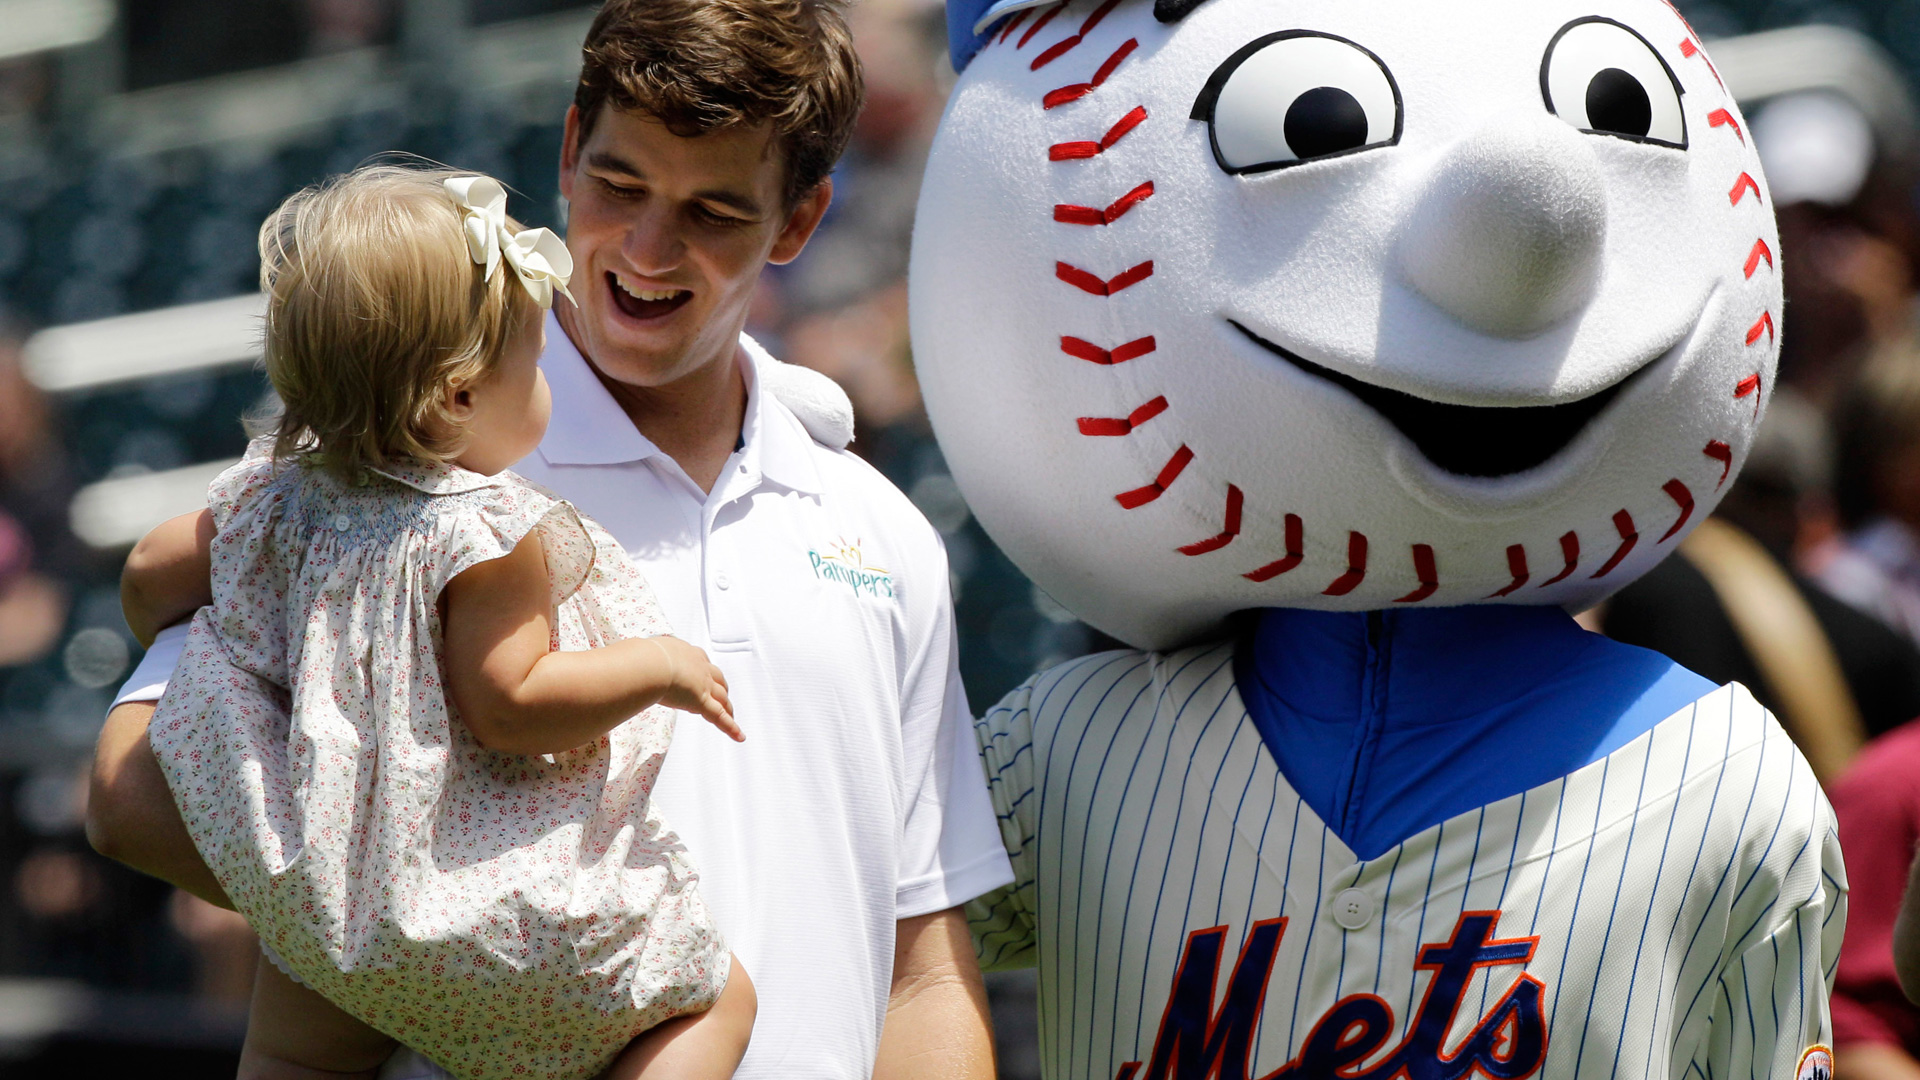 mr-met-new-york-041714-ap-ftr